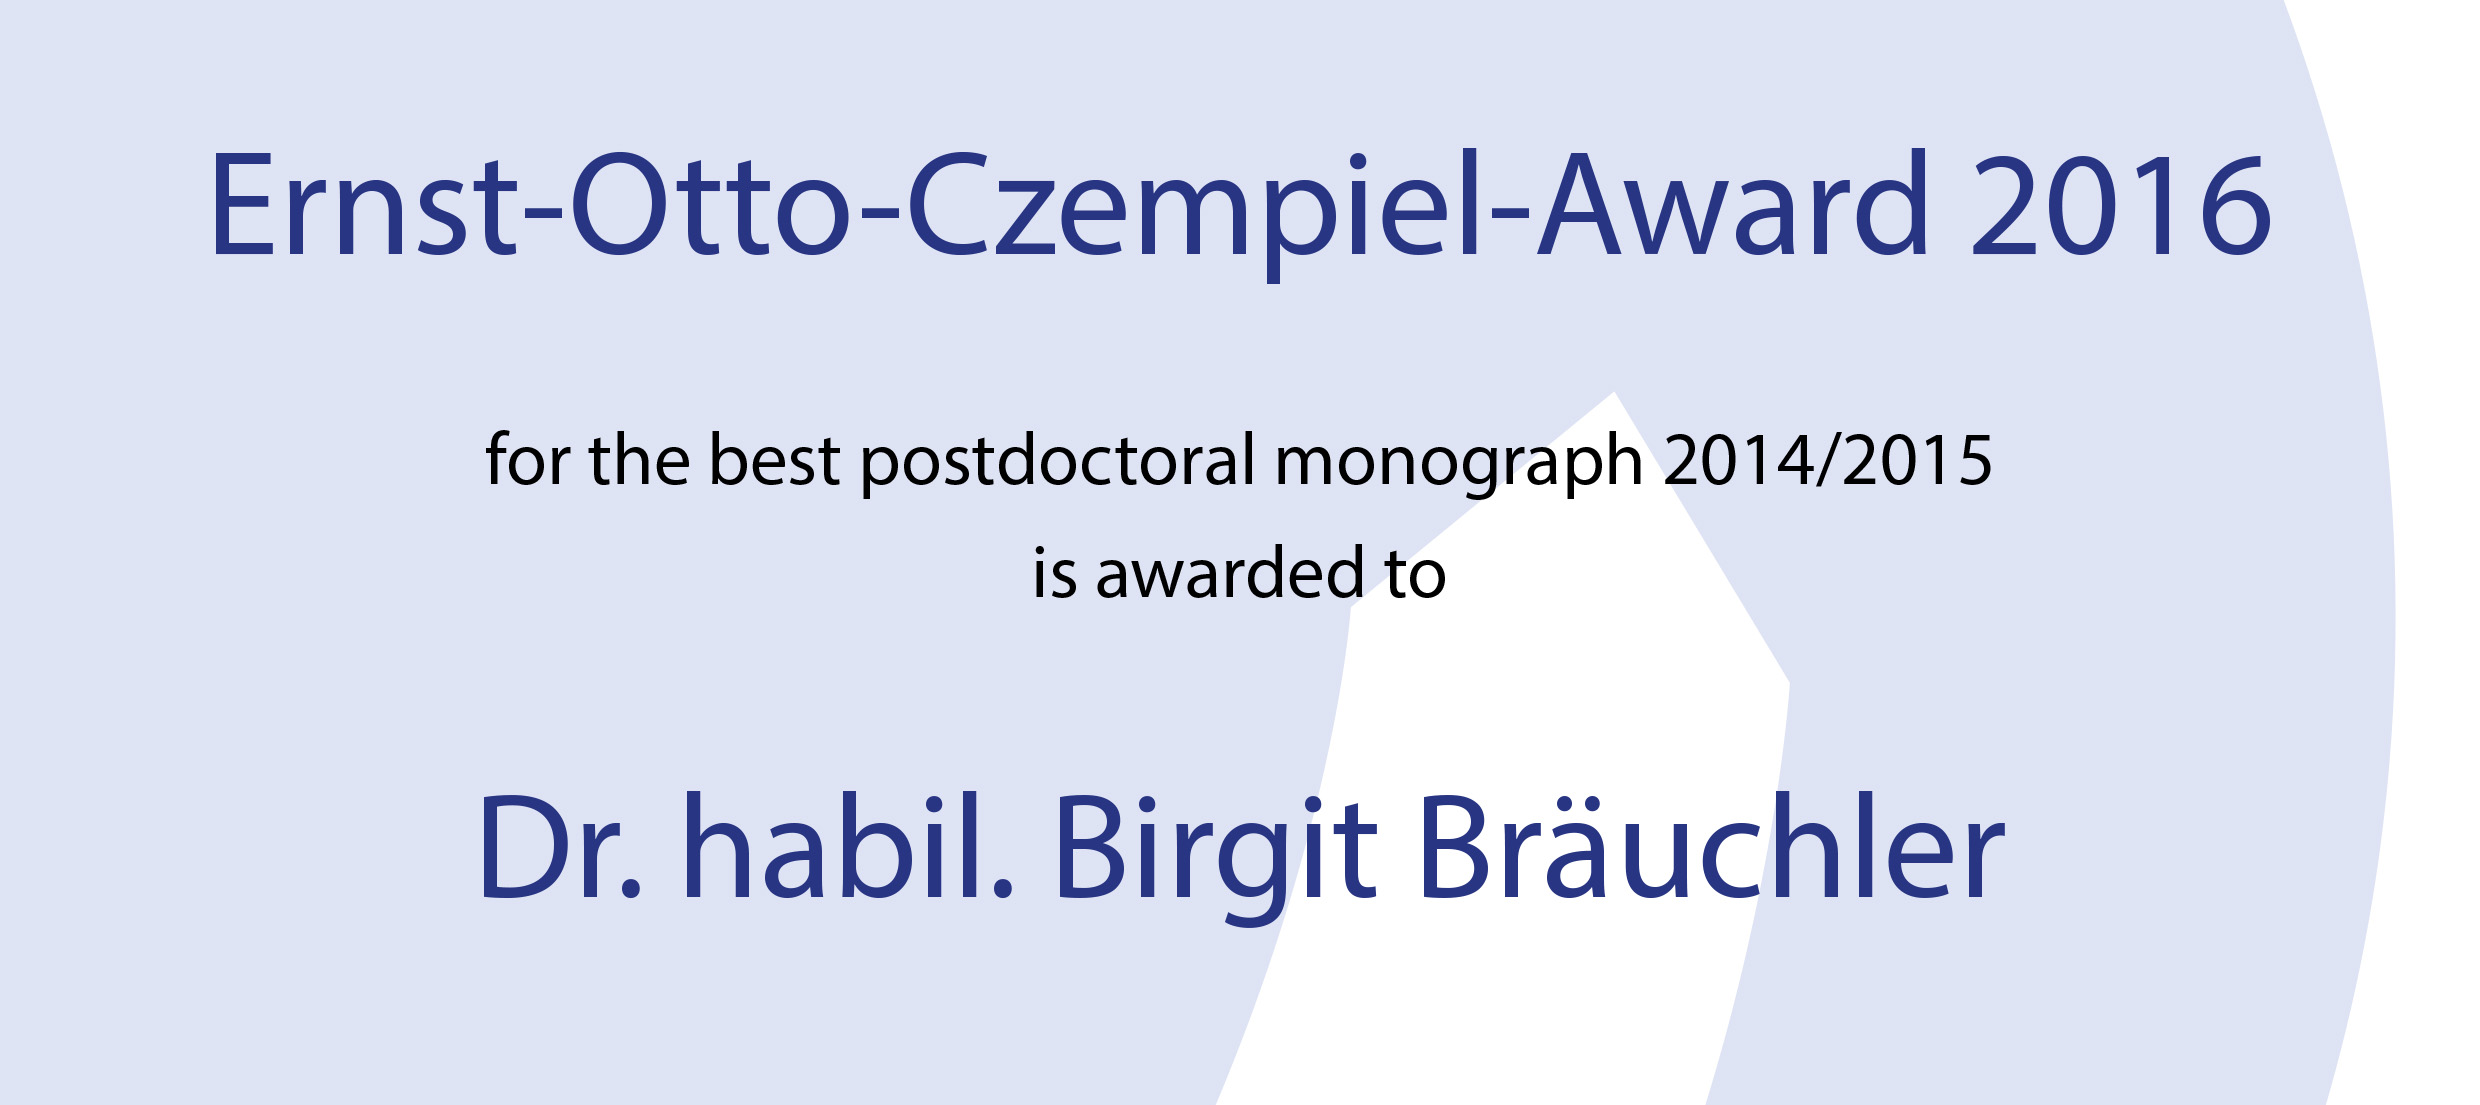 Ernst-Otto Czempiel Award 2016 for Social Anthropologist Birgit Bräuchler